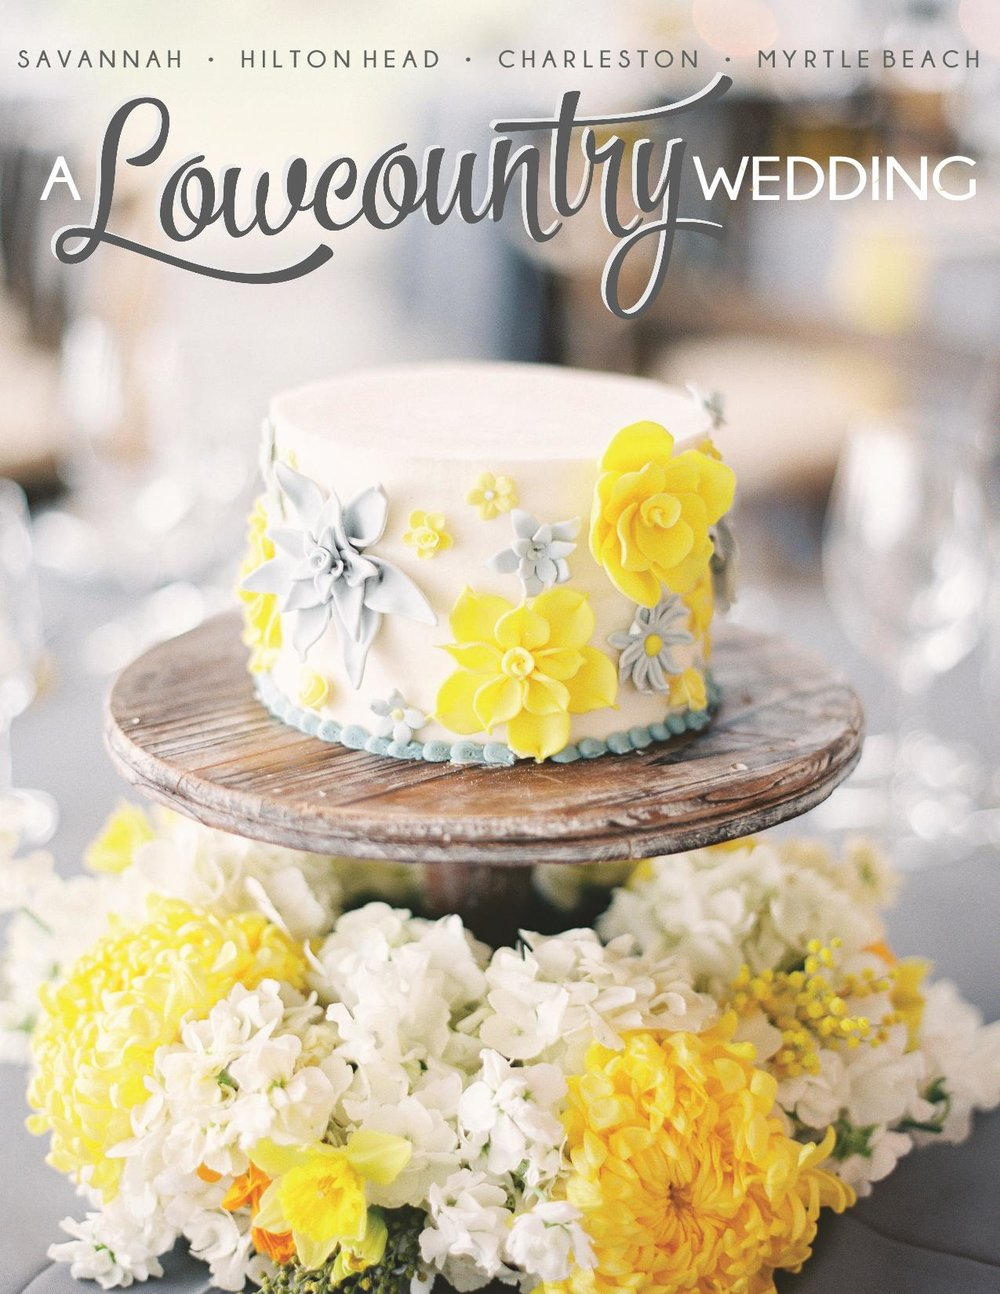 Winter 2017 - A Lowcountry Wedding Magazine